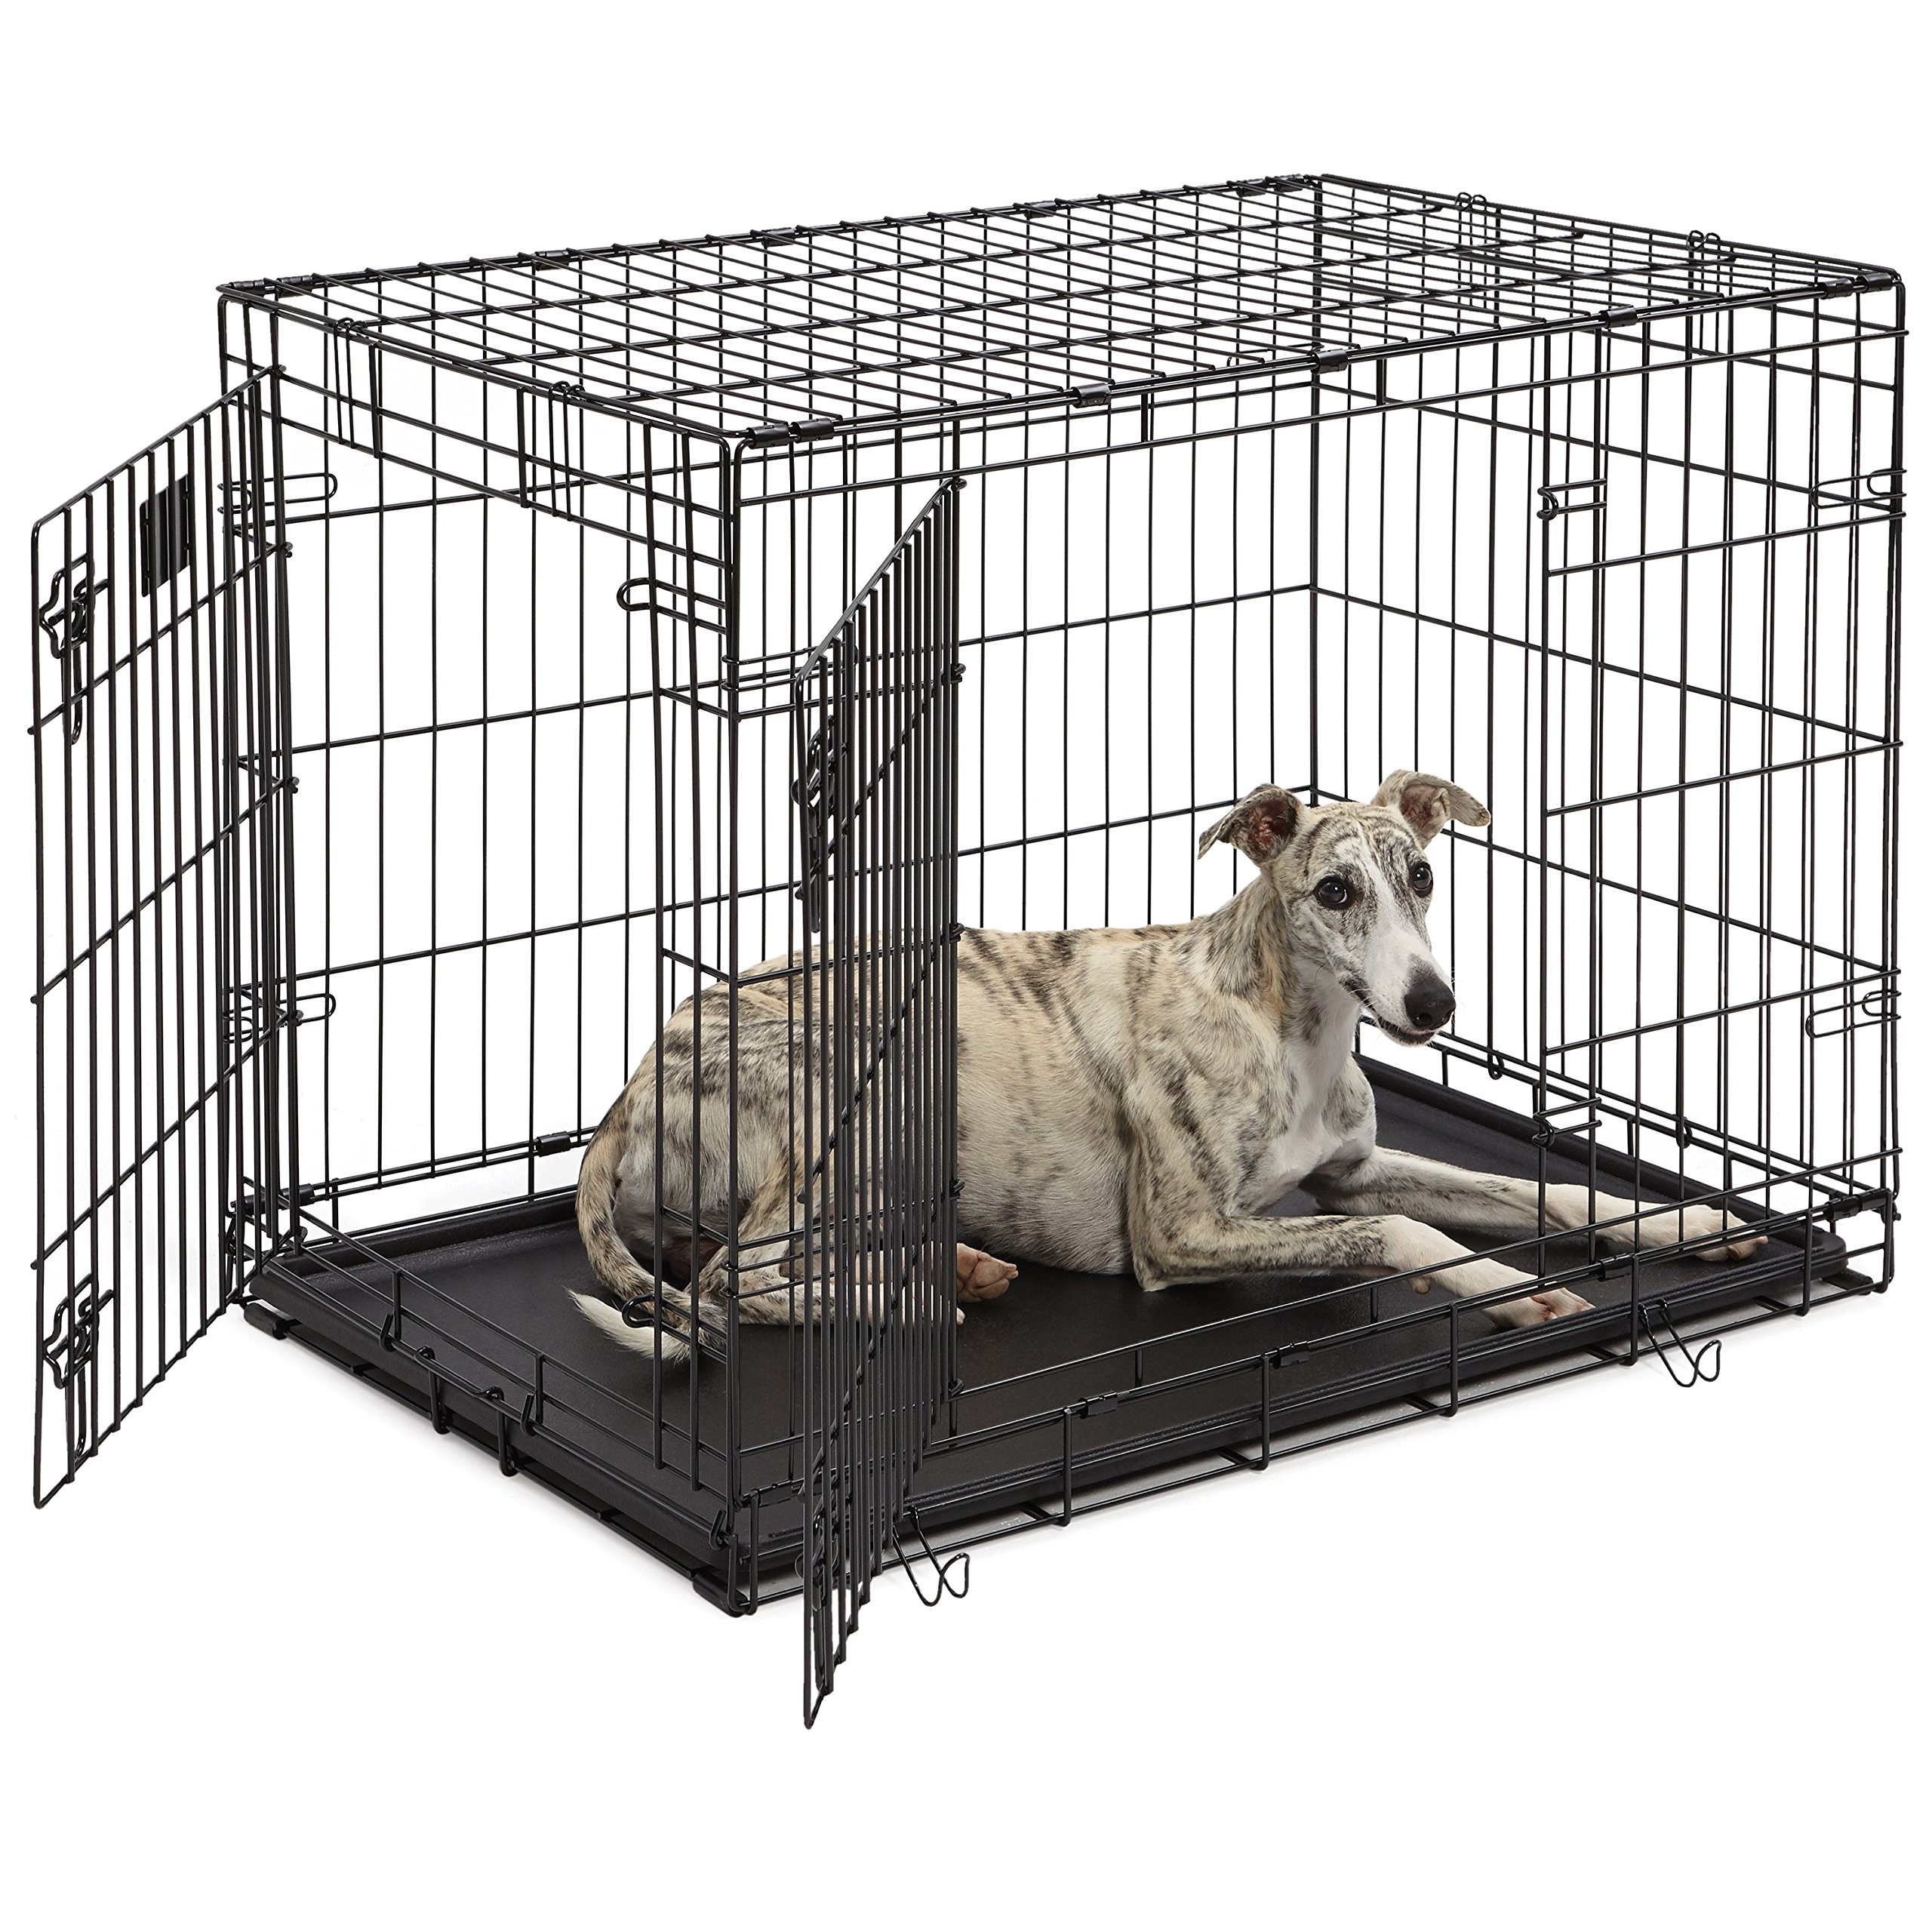 Dog Crate | MidWest Life Stages 36'' Double Door Folding Metal Dog Crate | Divider Panel, Floor Protecting Feet, Leak-Proof Dog Tray | 36L x 24W x 27H Inches, Intermediate Dog Breed by MidWest Homes for Pets